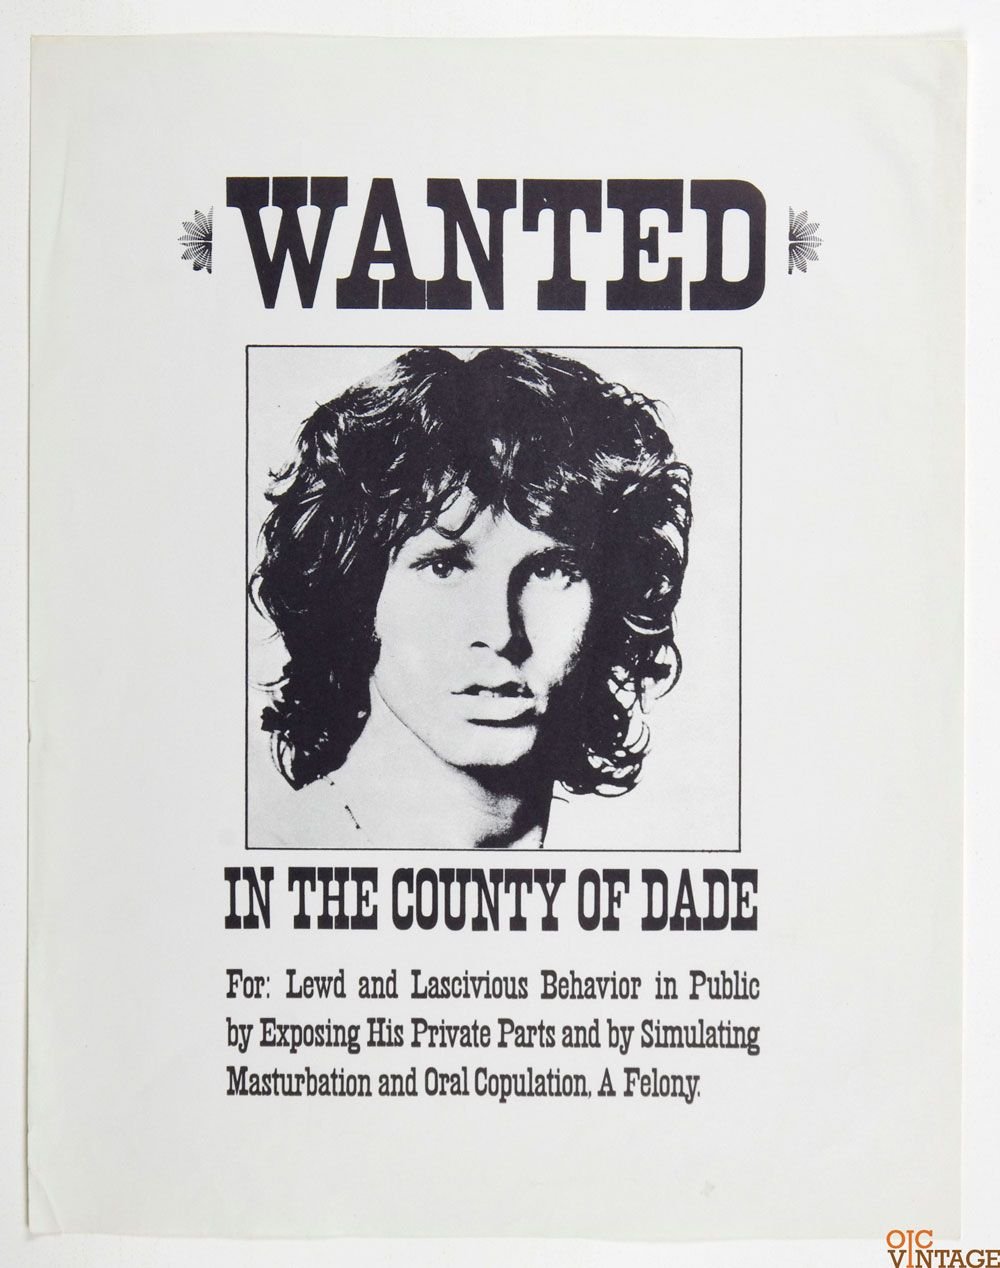 Jim Morrison Poster Wanted In The County Of Dade 1974 17 5 X 22 5 Jim Morrison Poster Jim Morrison Morrison